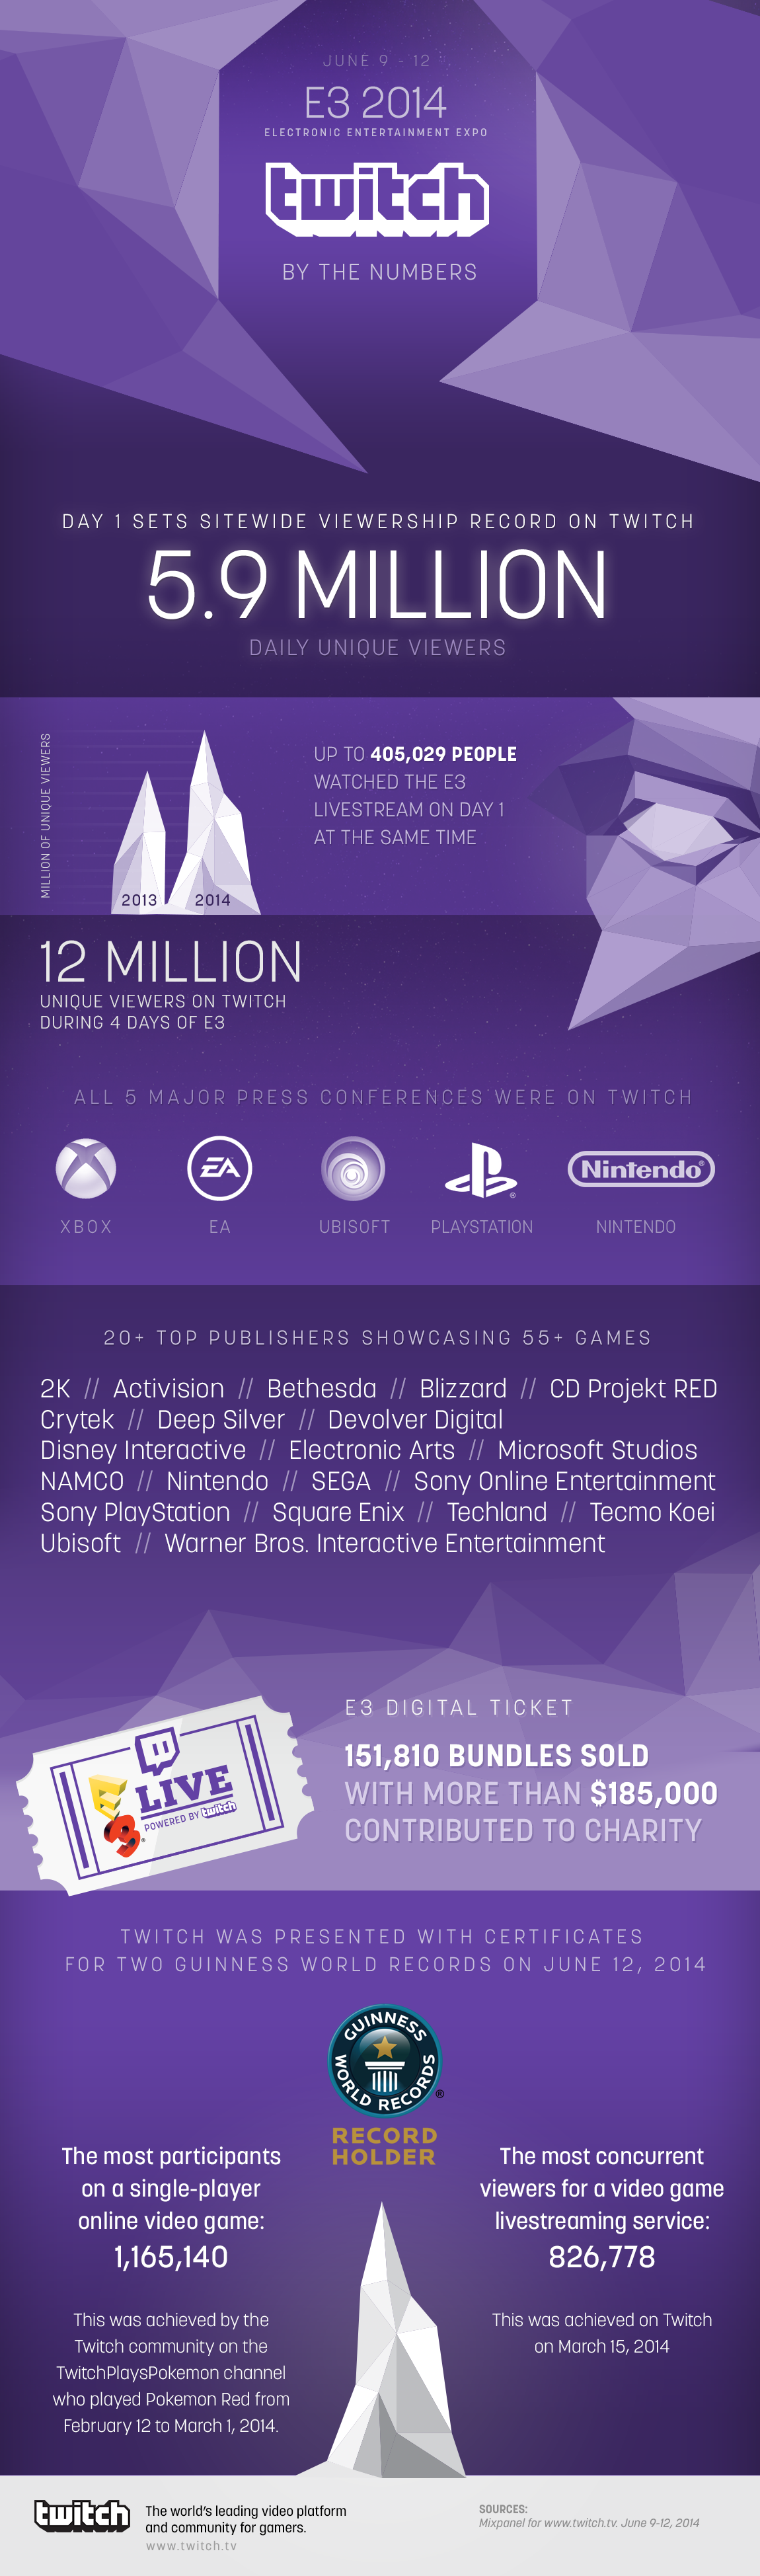 Twitch_E32014_infographic FINAL